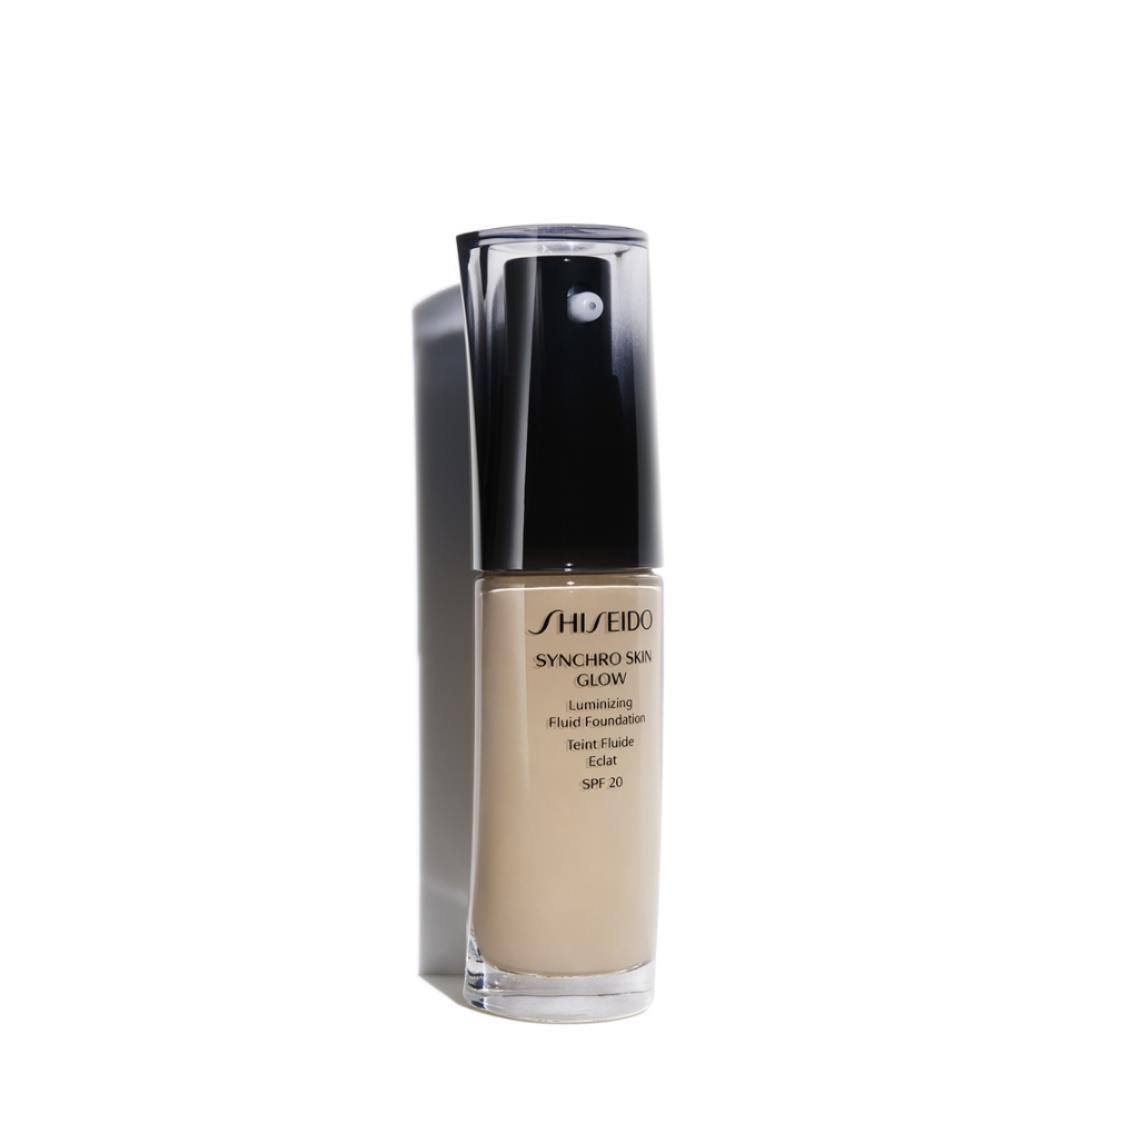 Makeup Synchro Skin Glow Luminizing Fluid Foundation 30ml